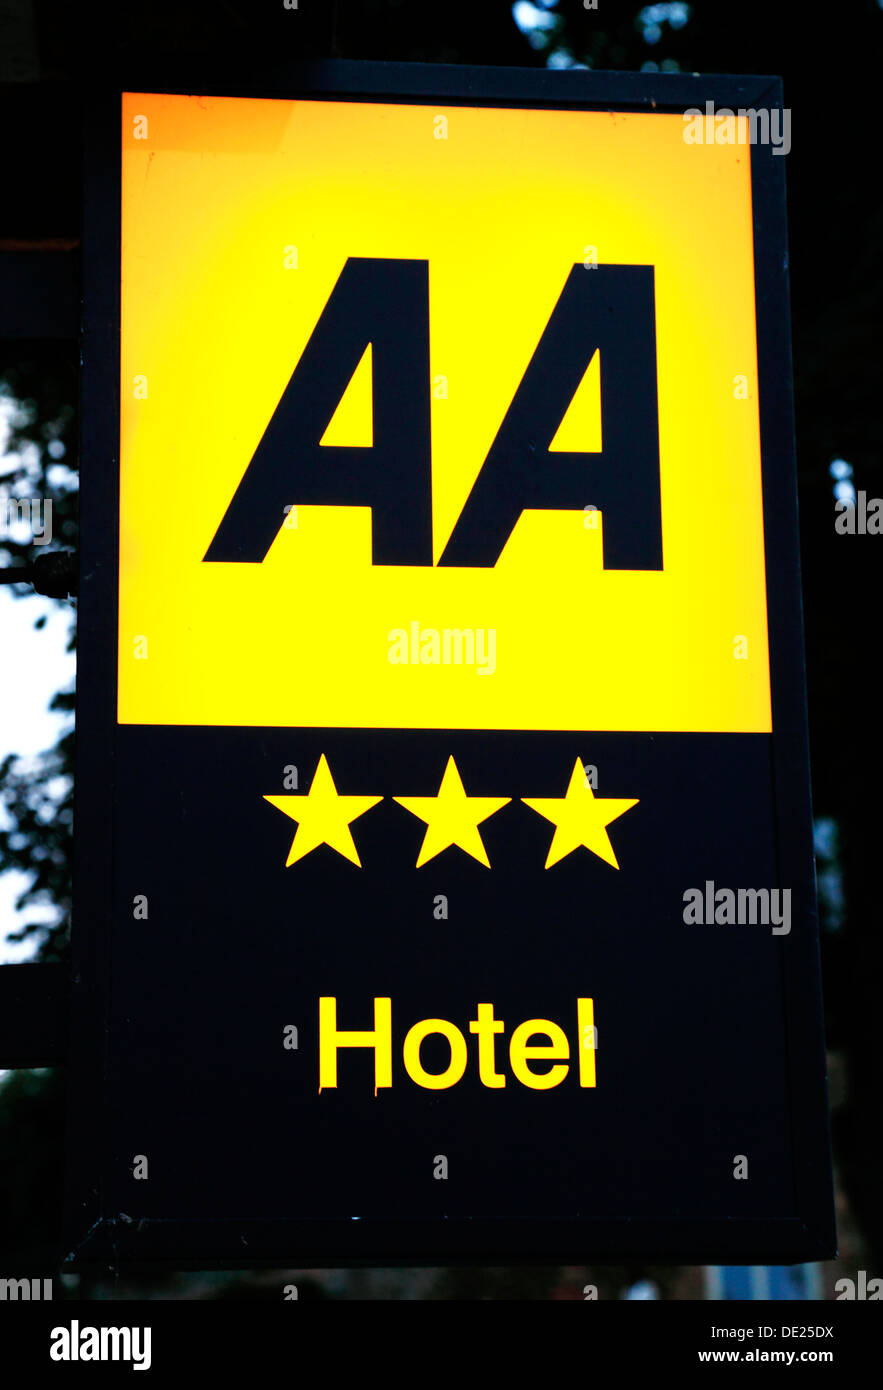 AA 3 Star, stars Hotel Sign rating UK - Stock Image